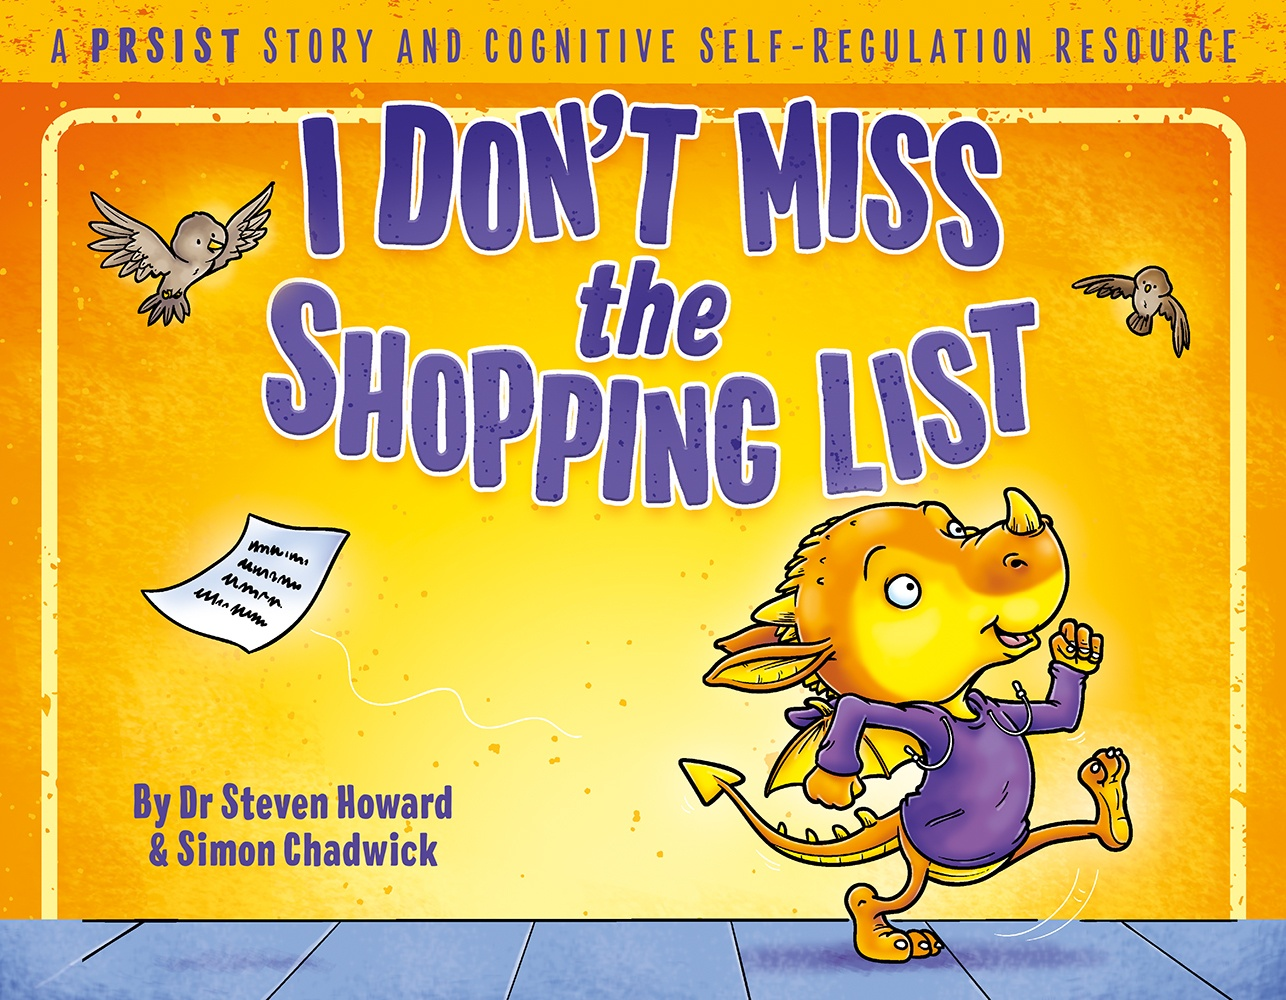 Cover of I Don't Miss The Shopping List from Ceratopia Books, a PRSIST book